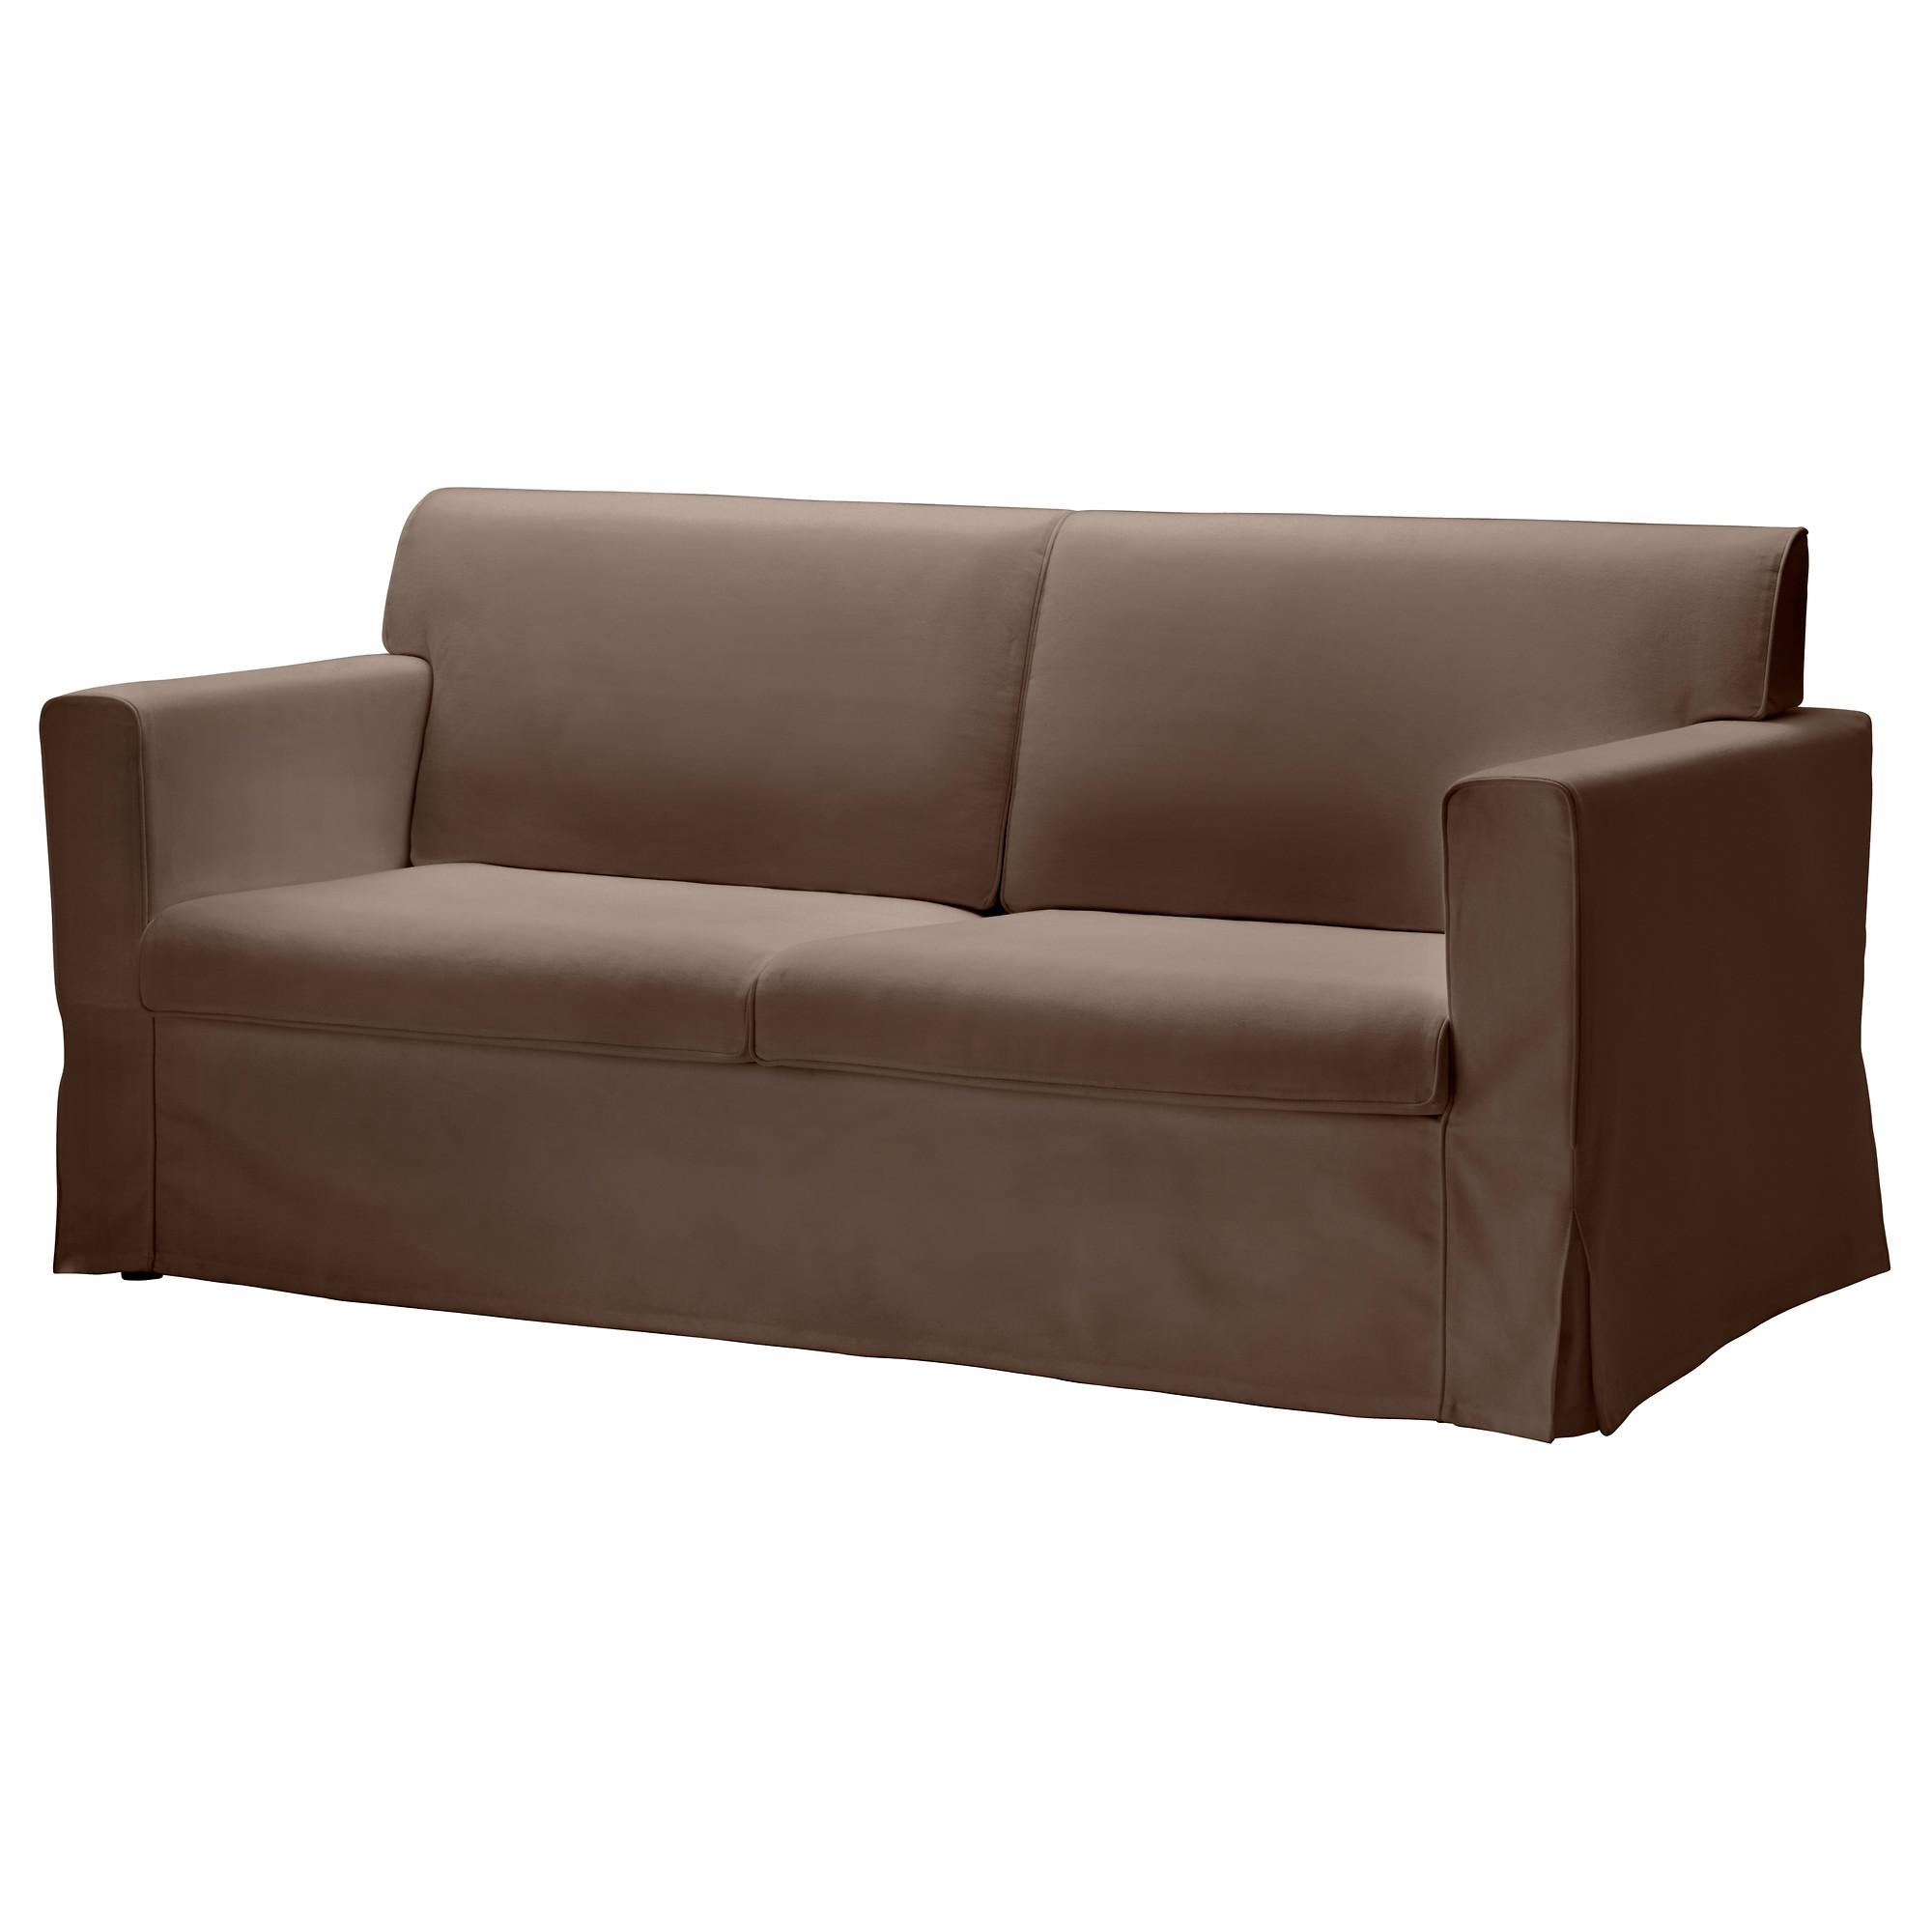 Good Simple Sofa 13 For Sofas And Couches Ideas With Simple Sofa Regarding Simple Sofas (Photo 1 of 20)